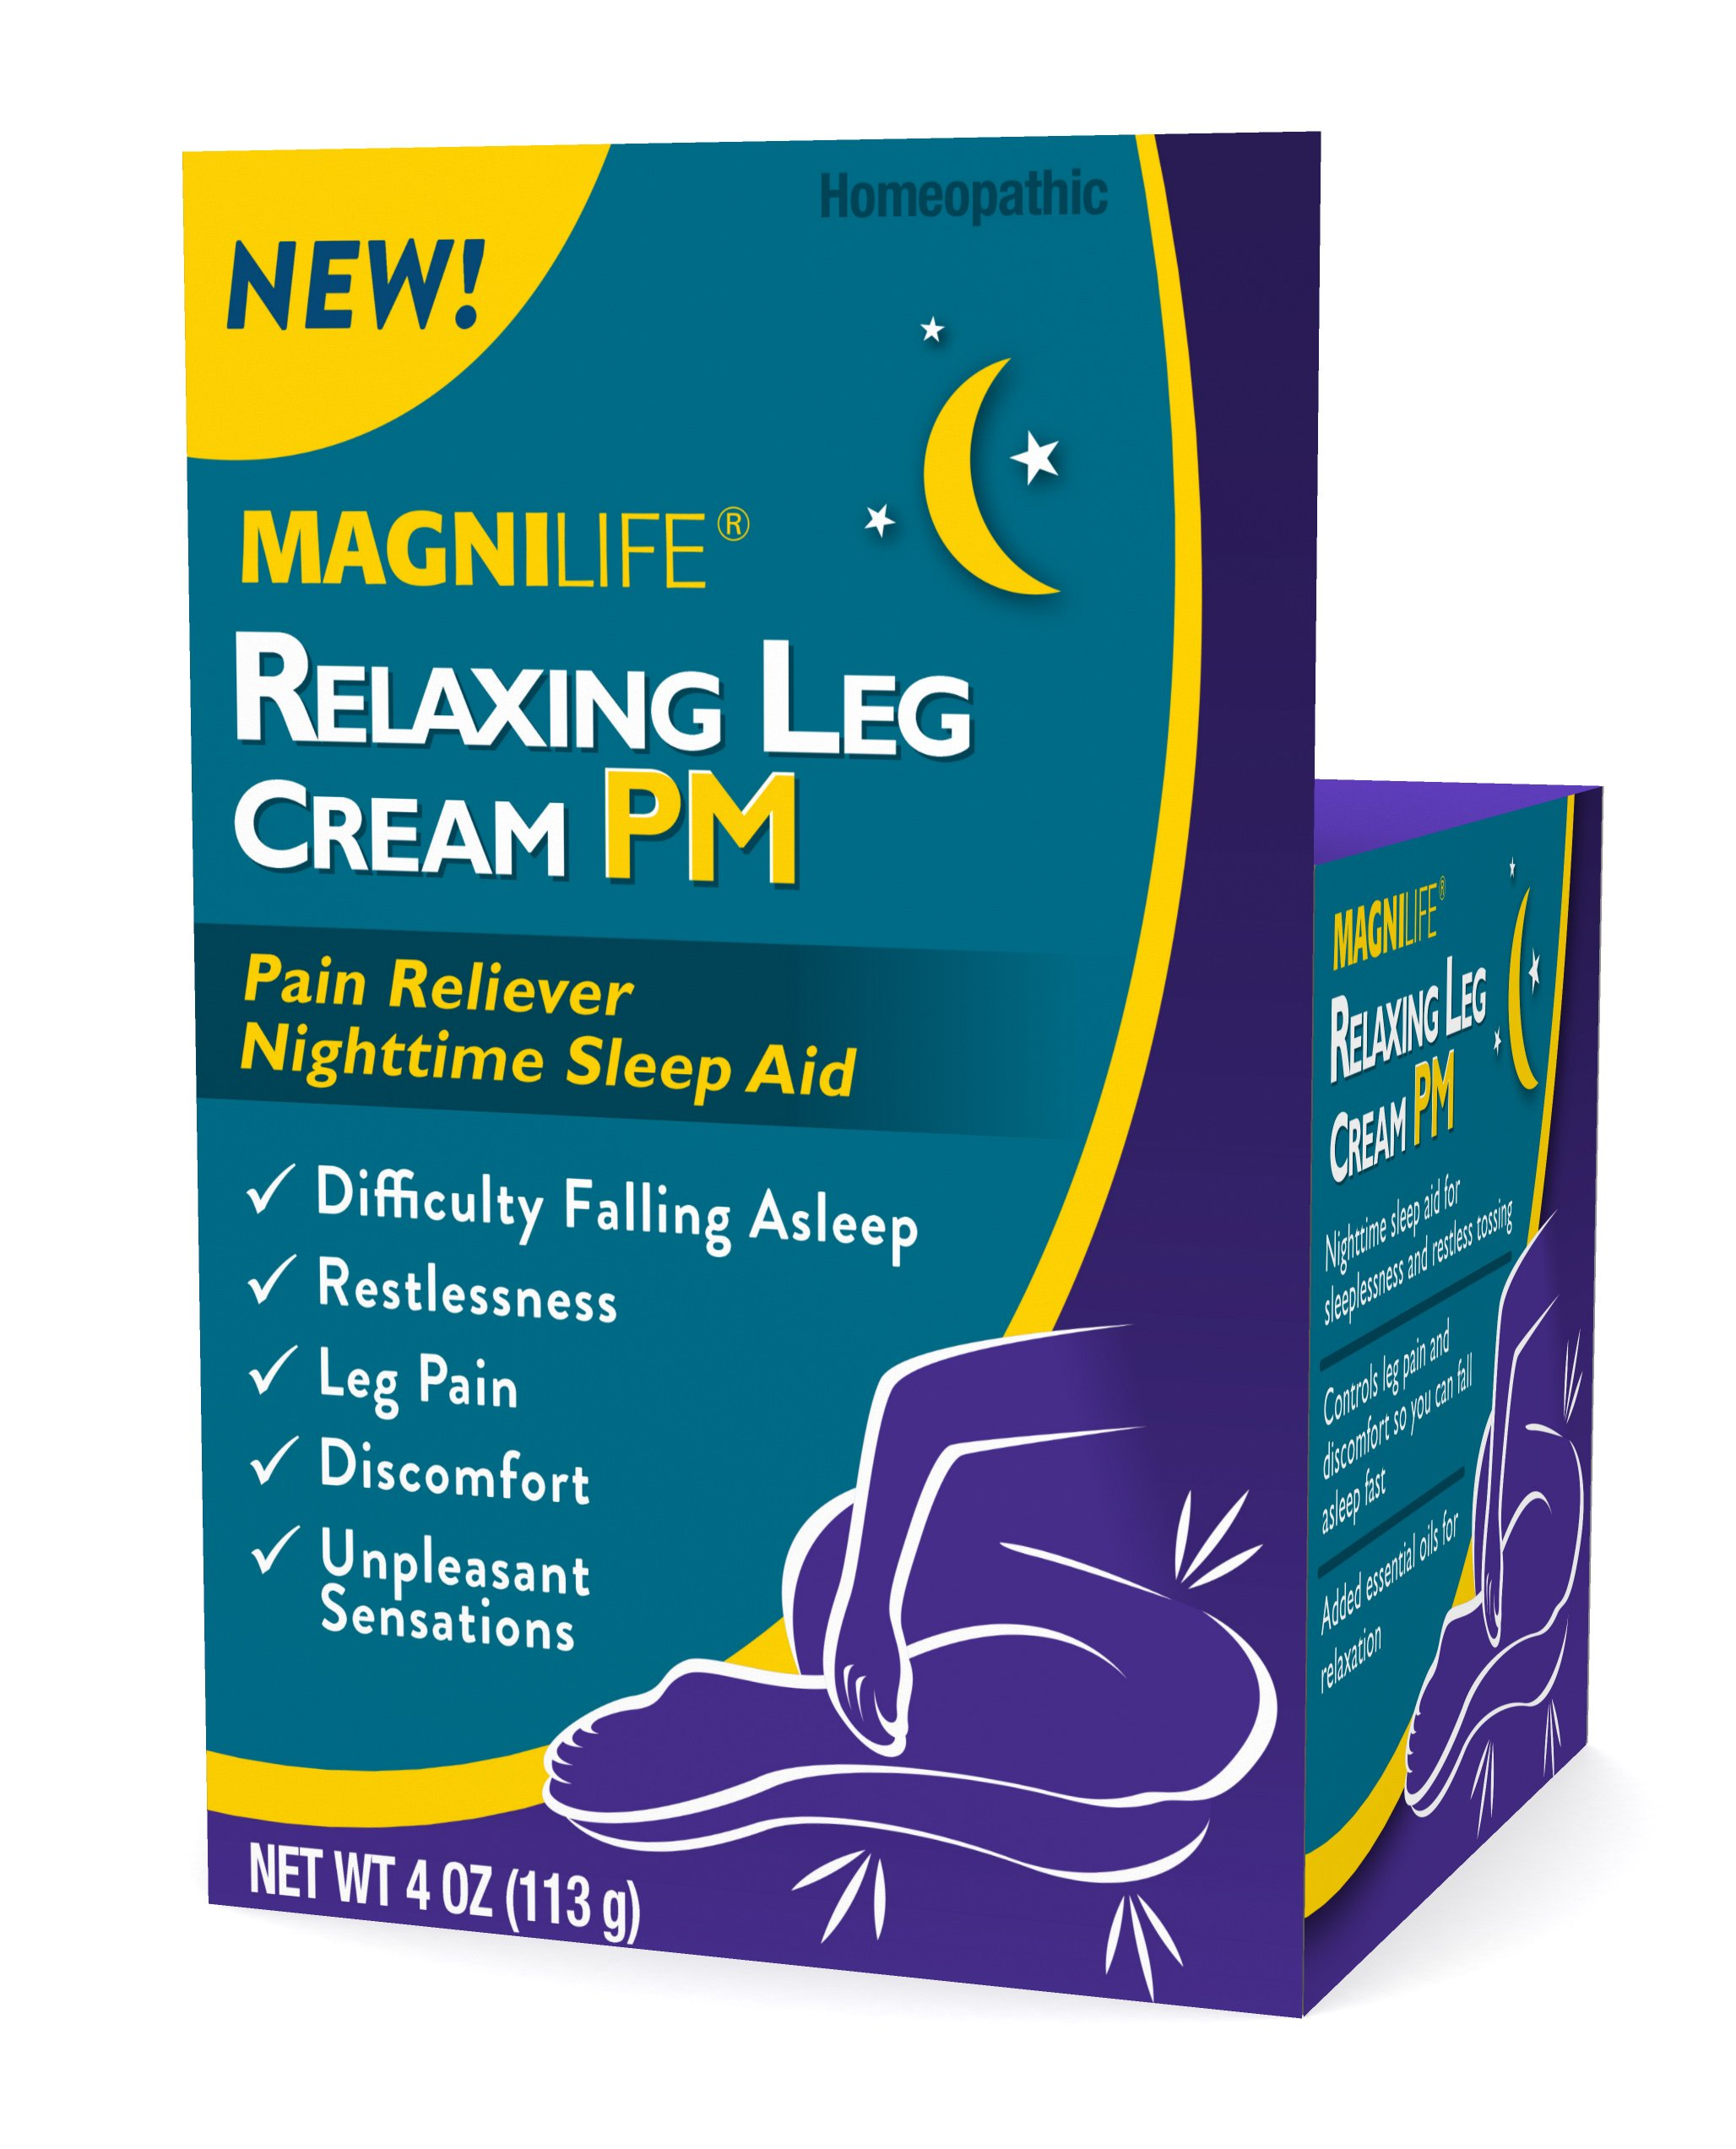 Magnilife Relaxing Leg Cream PM | Nighttime Sleep Aid for Restlessness, Leg Pain, Discomfort